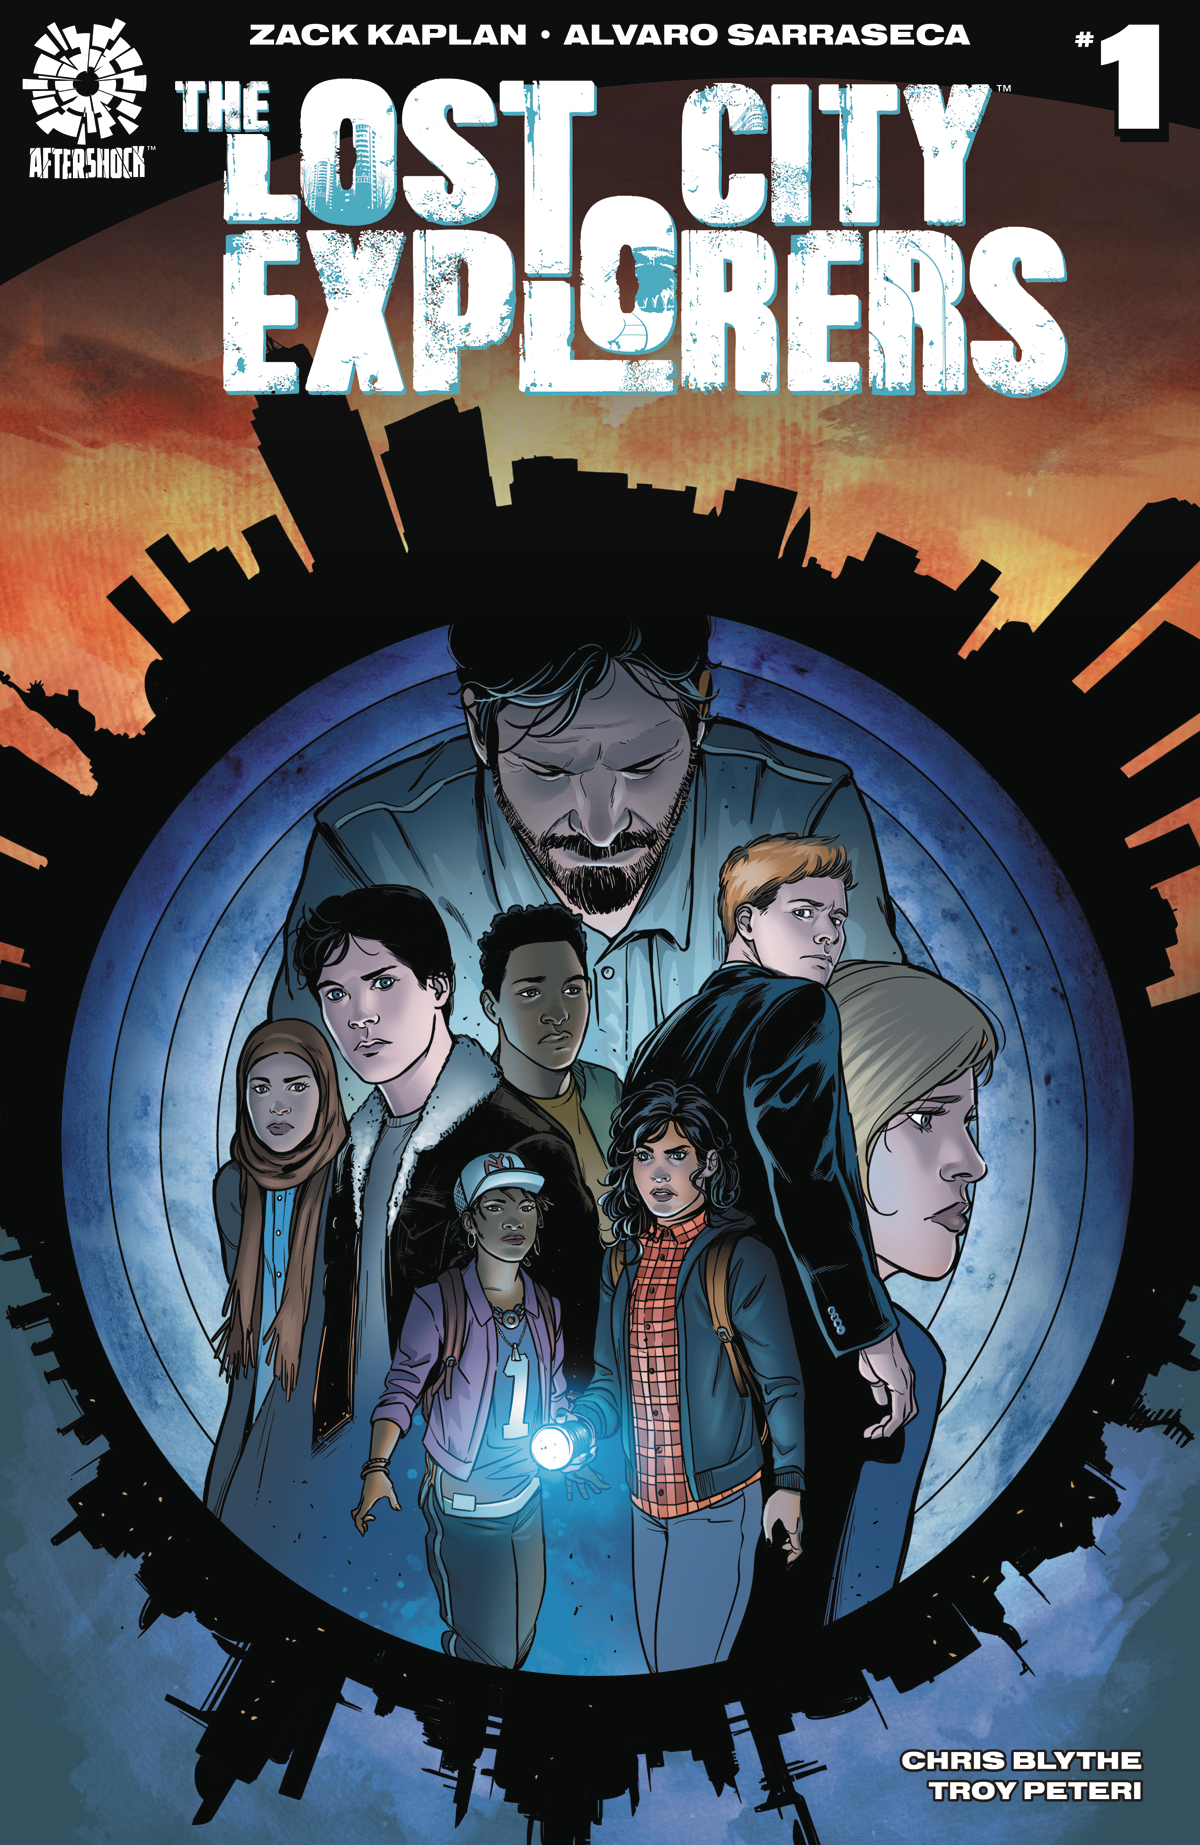 LOST CITY EXPLORERS #1 CVR B SARRASECA